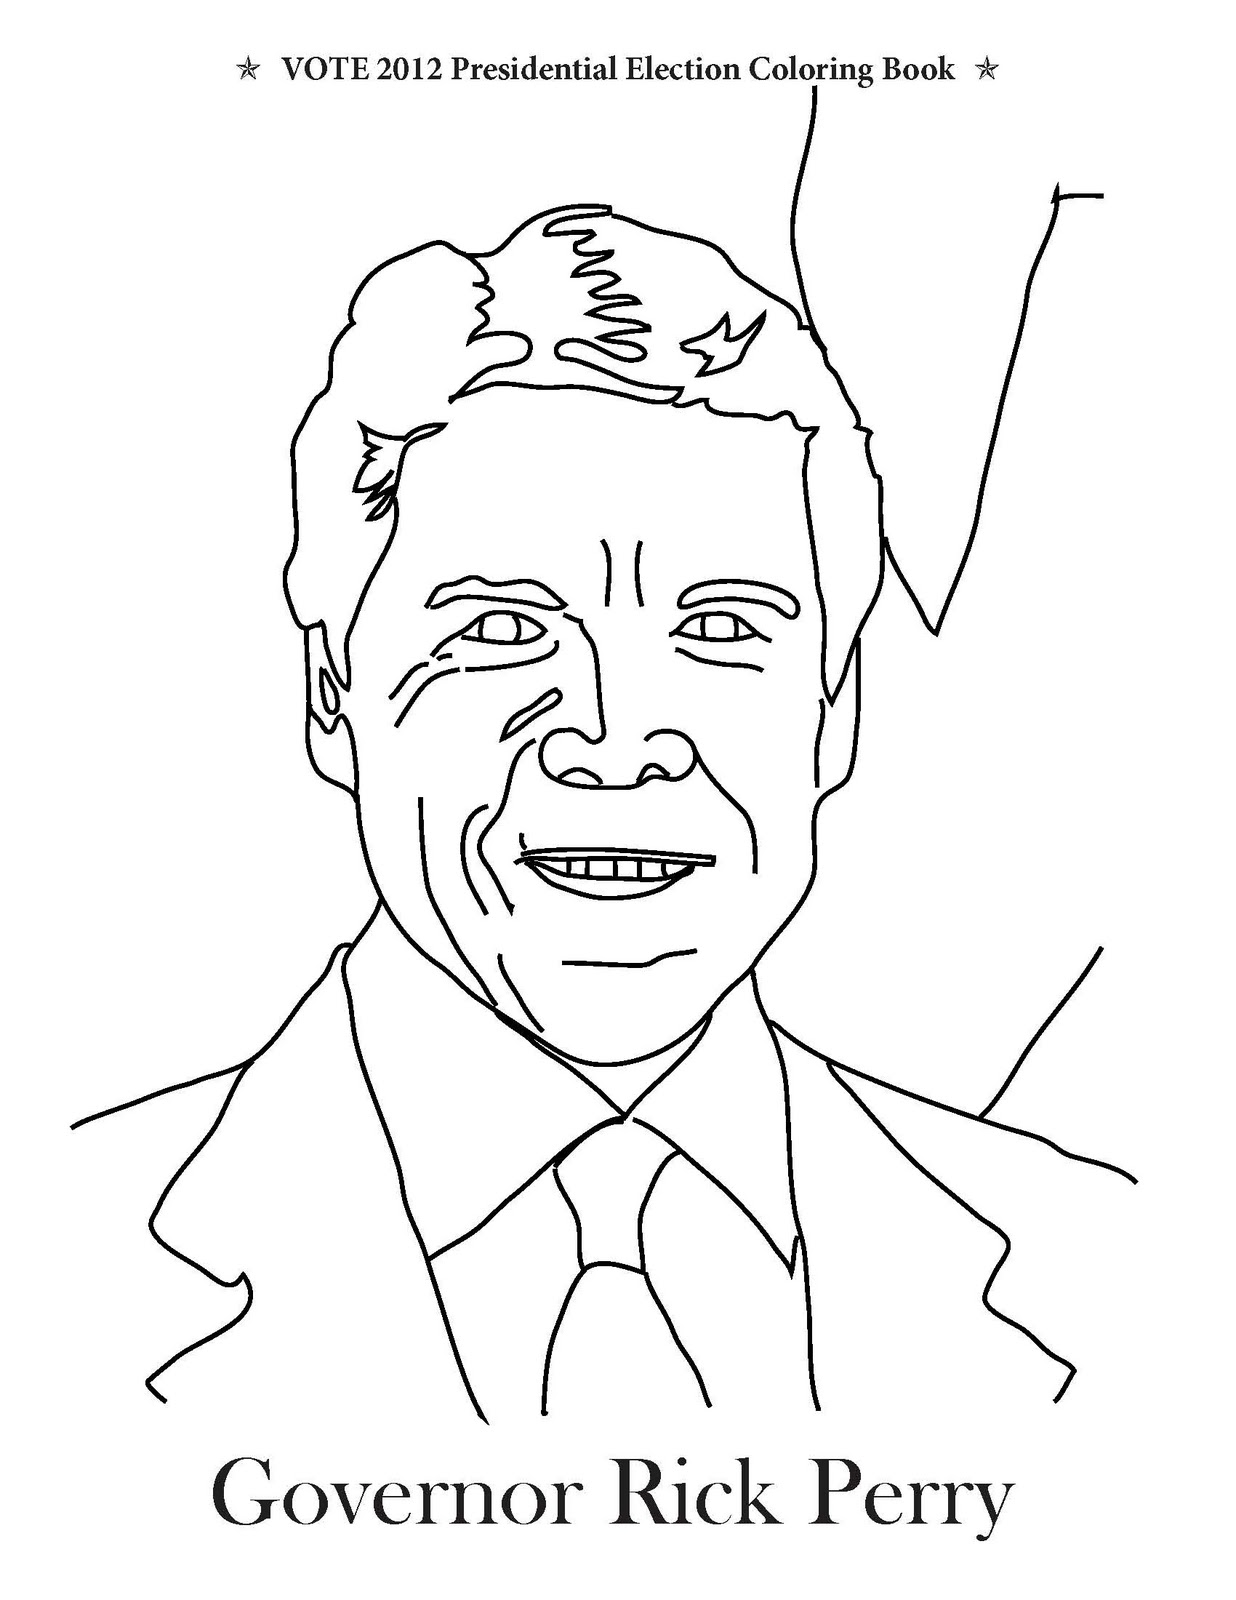 governor rick perry coloring page from vote 2012 presidential election coloring book